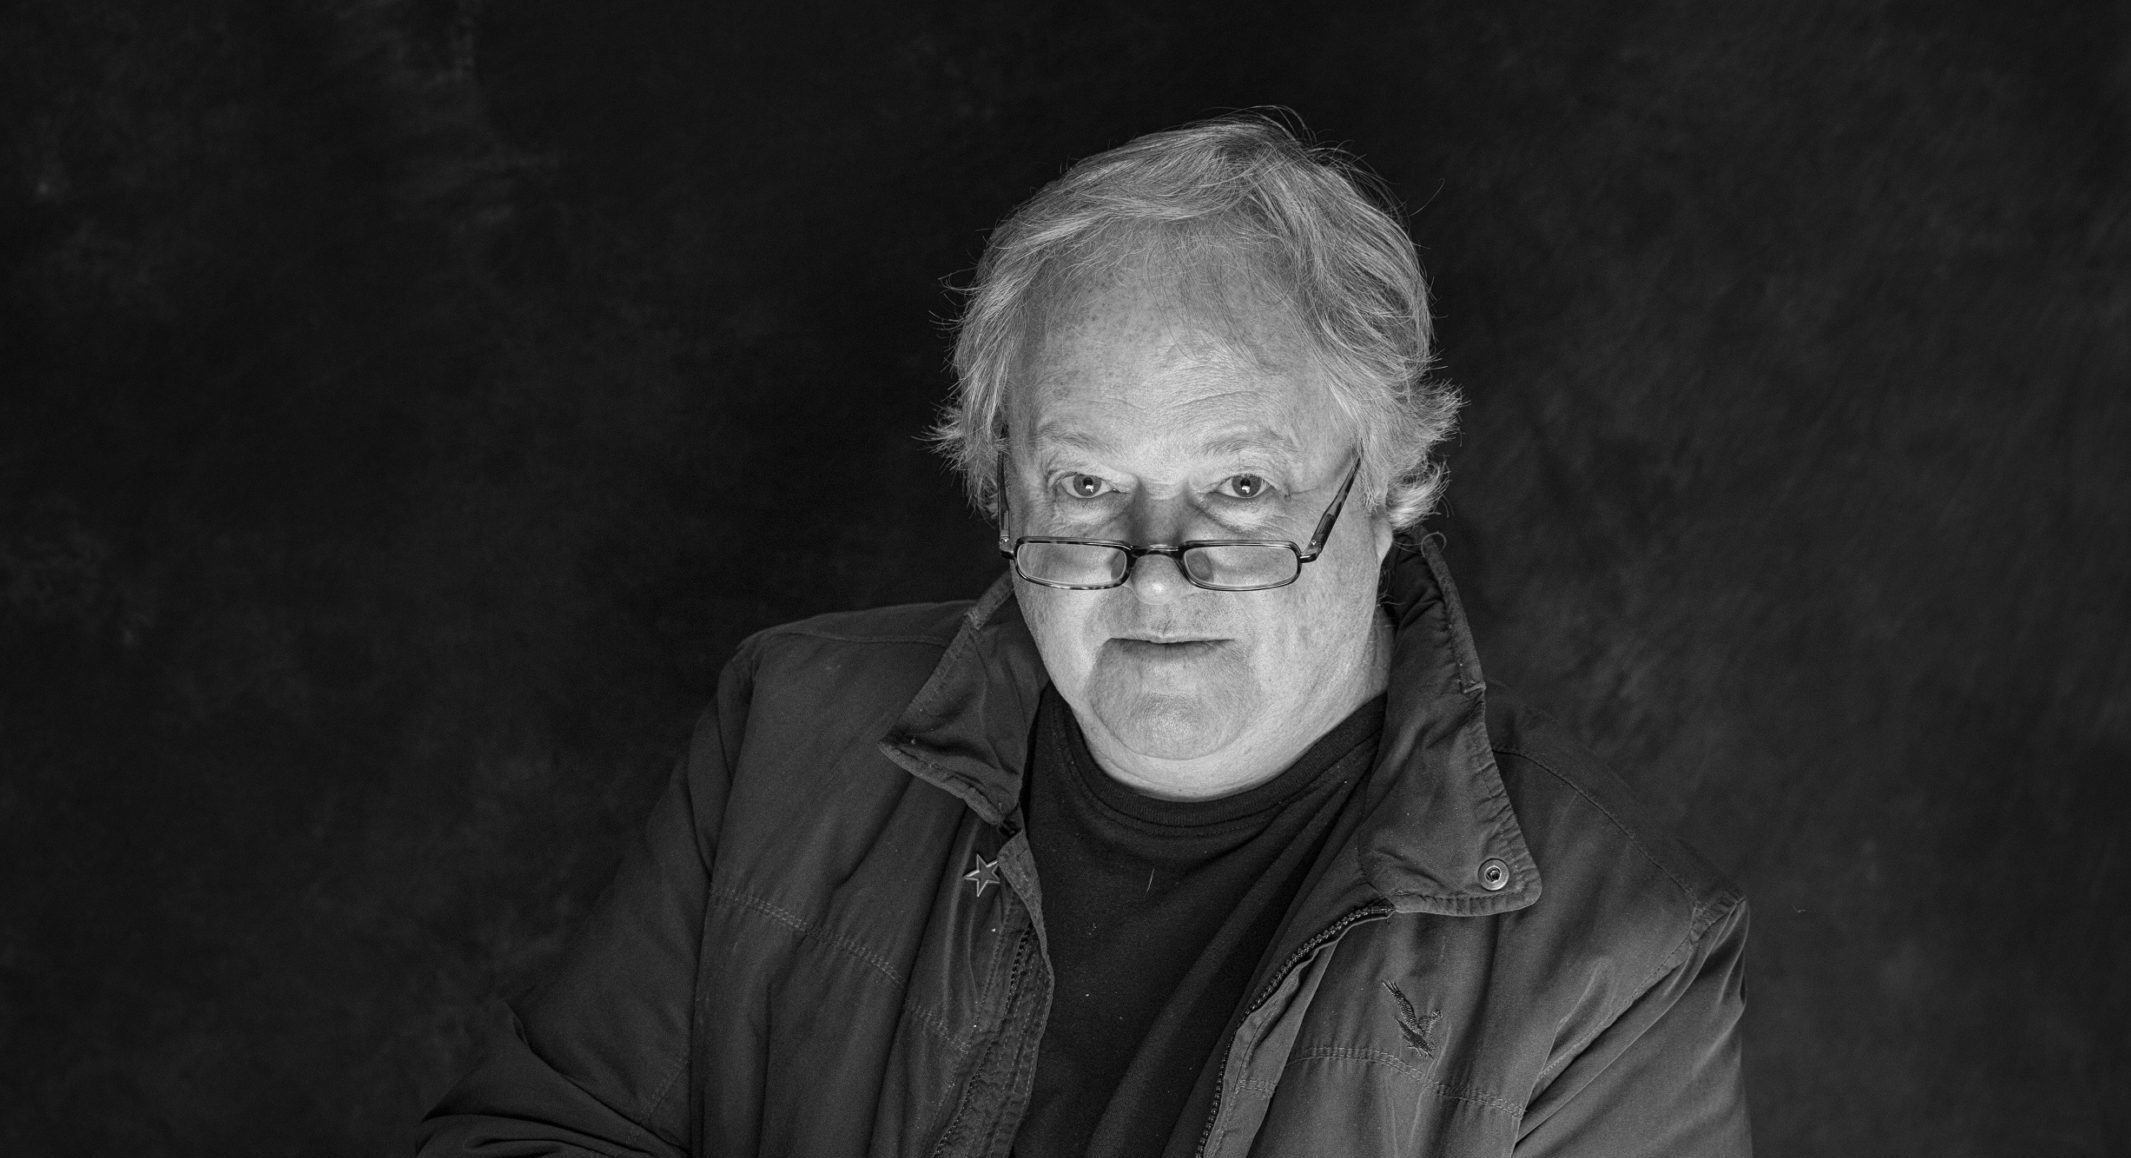 dailymaverick.co.za - Psg - Sponsored Content: Jacques Pauw and other industry-experts share their views in PSG's Think Big webinar series